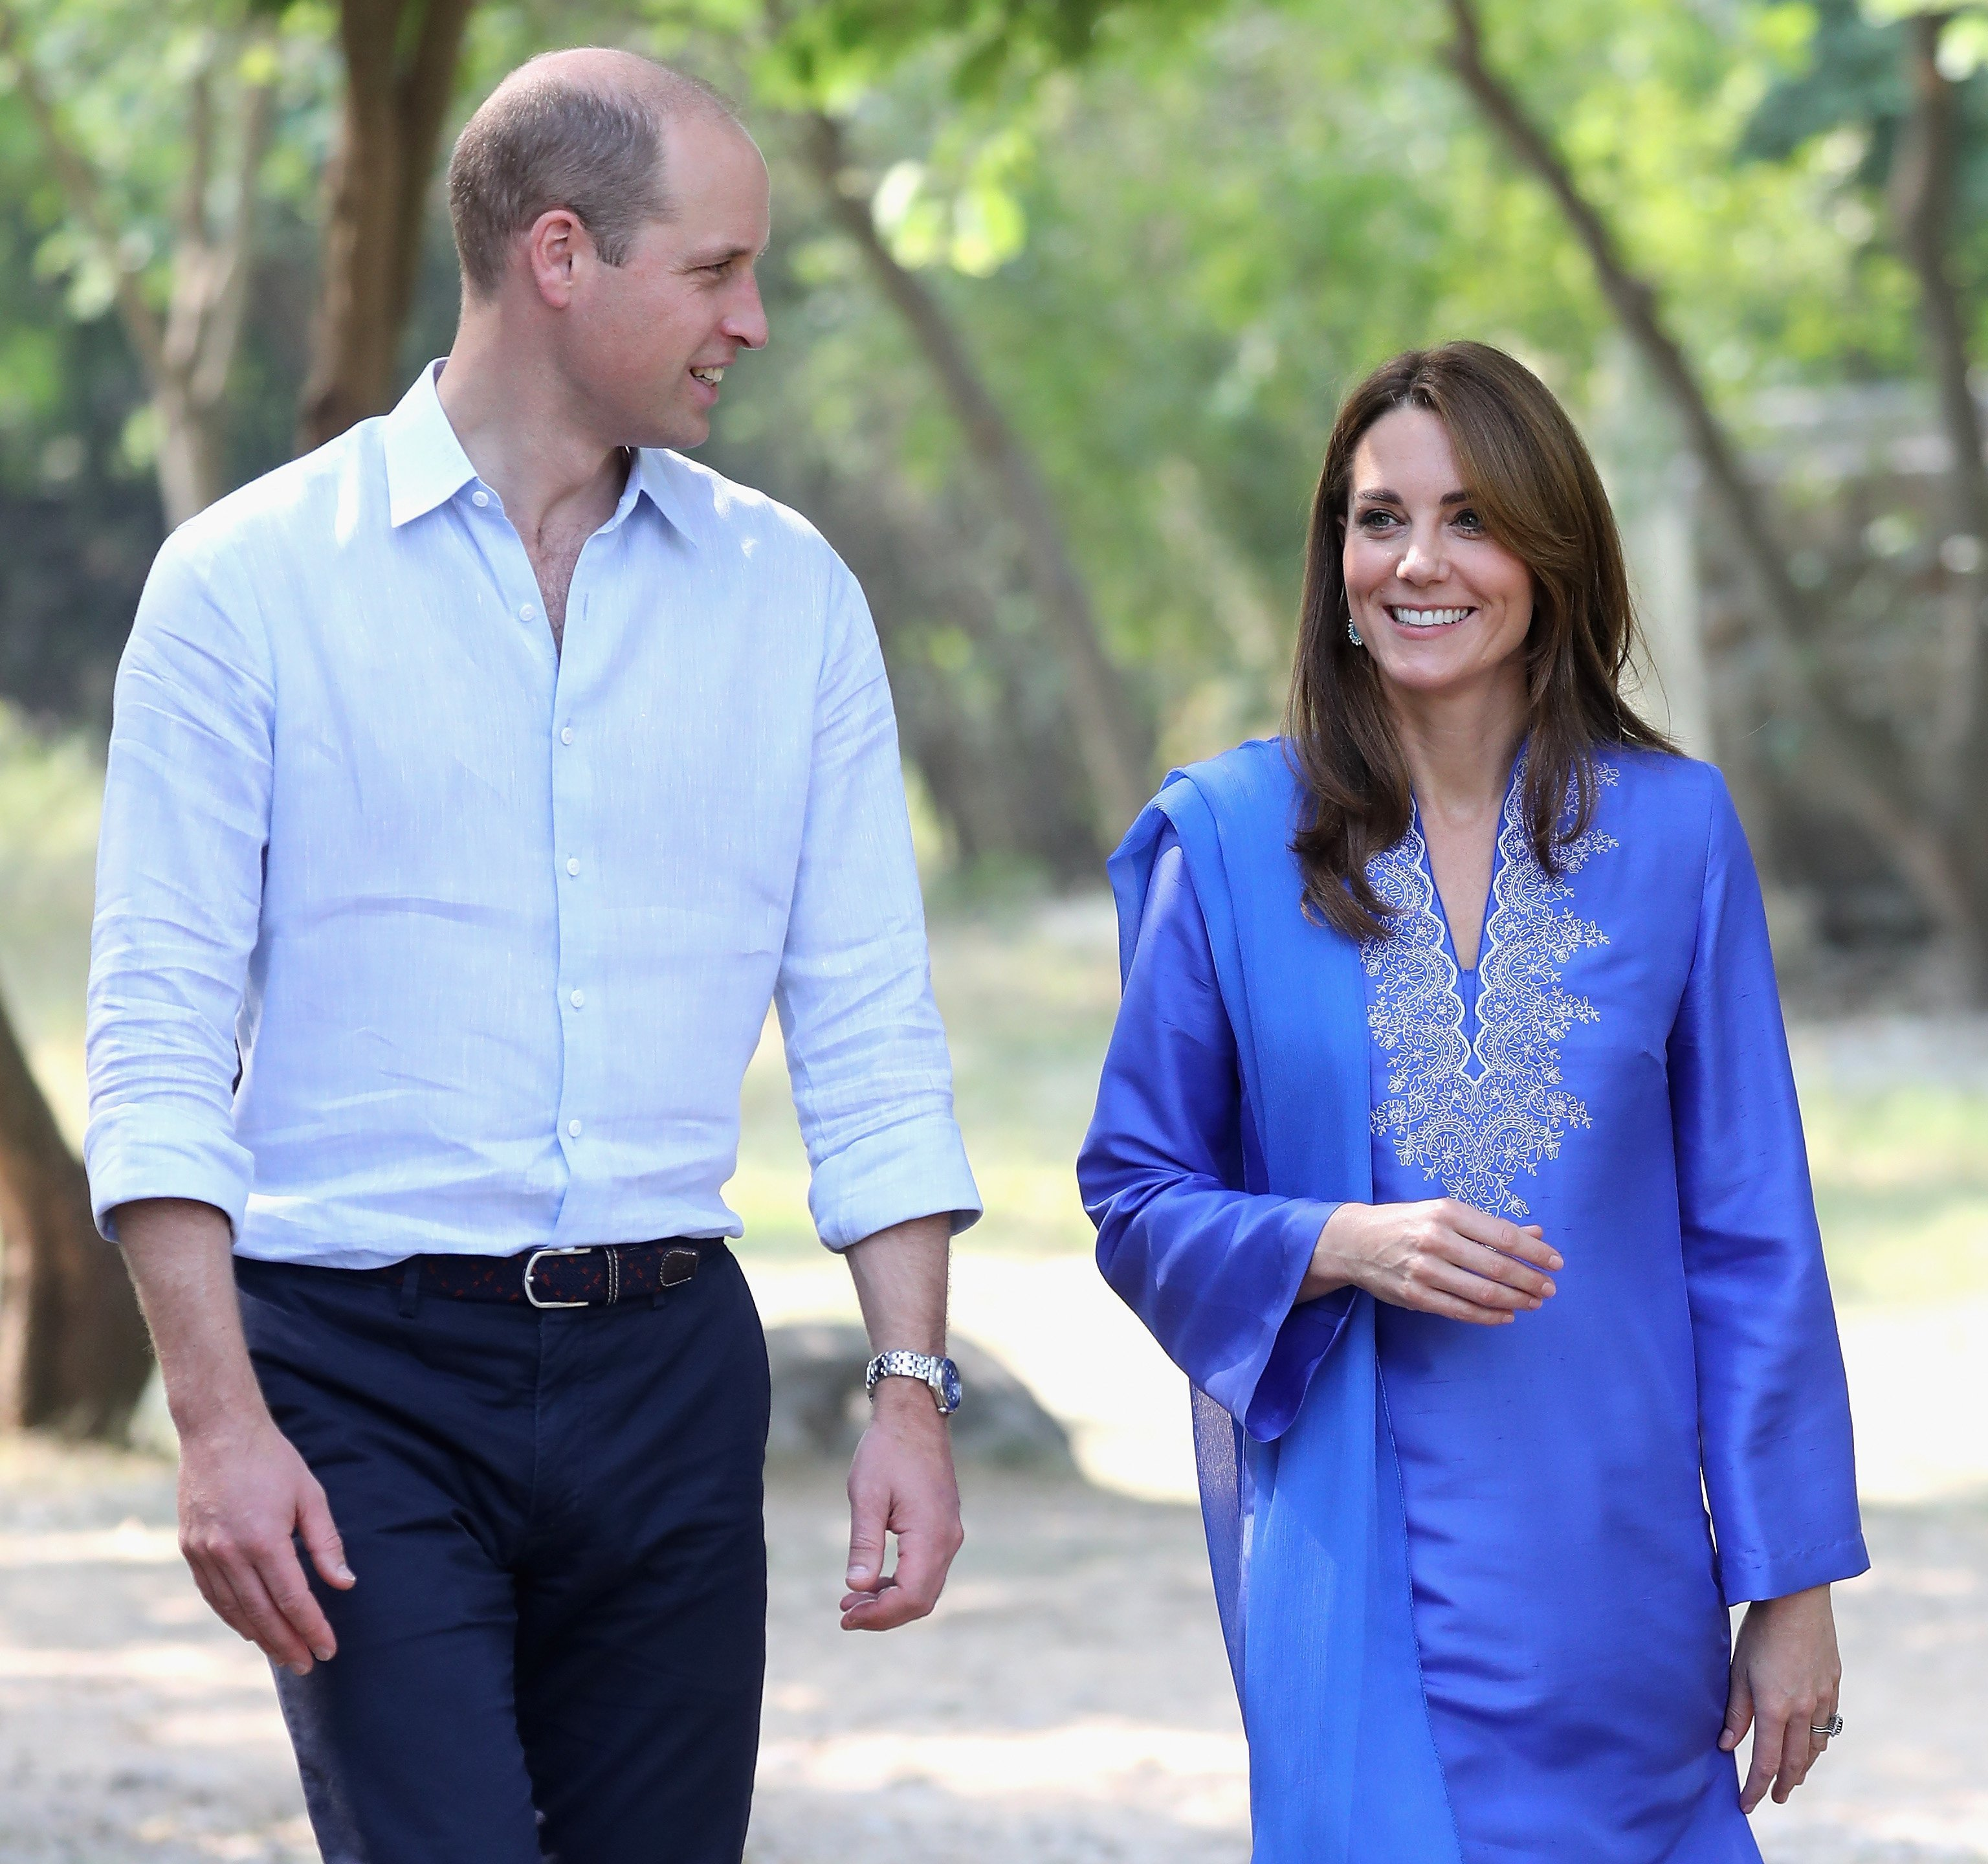 Prince William and Catherine at the Margallah Hills National Park on October 15, 2019, in Islamabad, Pakistan. | Source: Getty Images